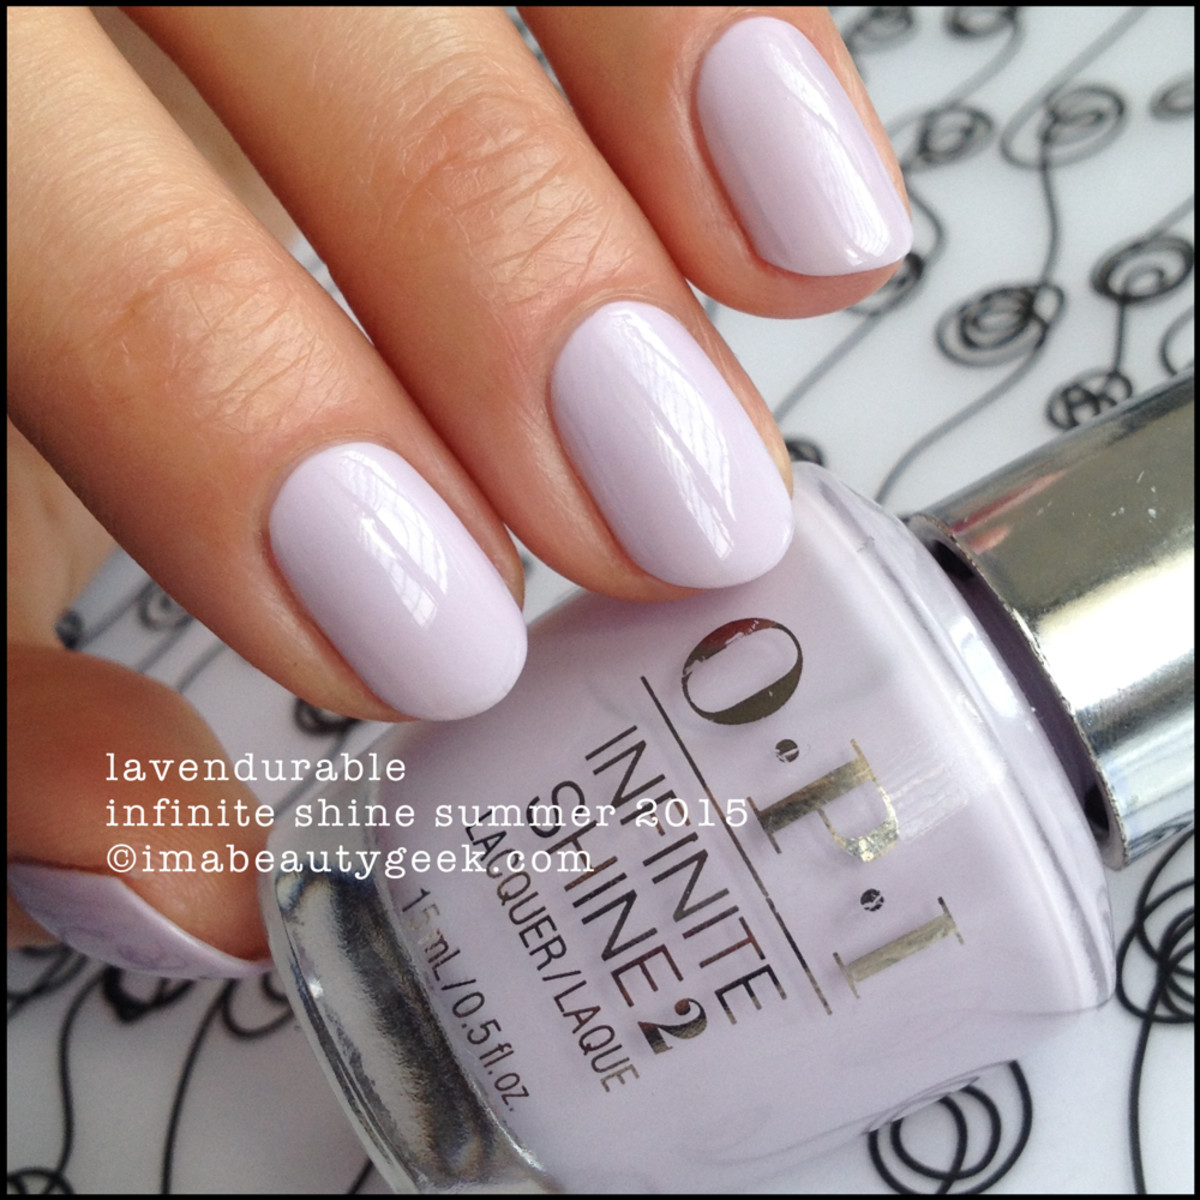 OPI Infinite Shine OPI Lavendurable Summer 2015